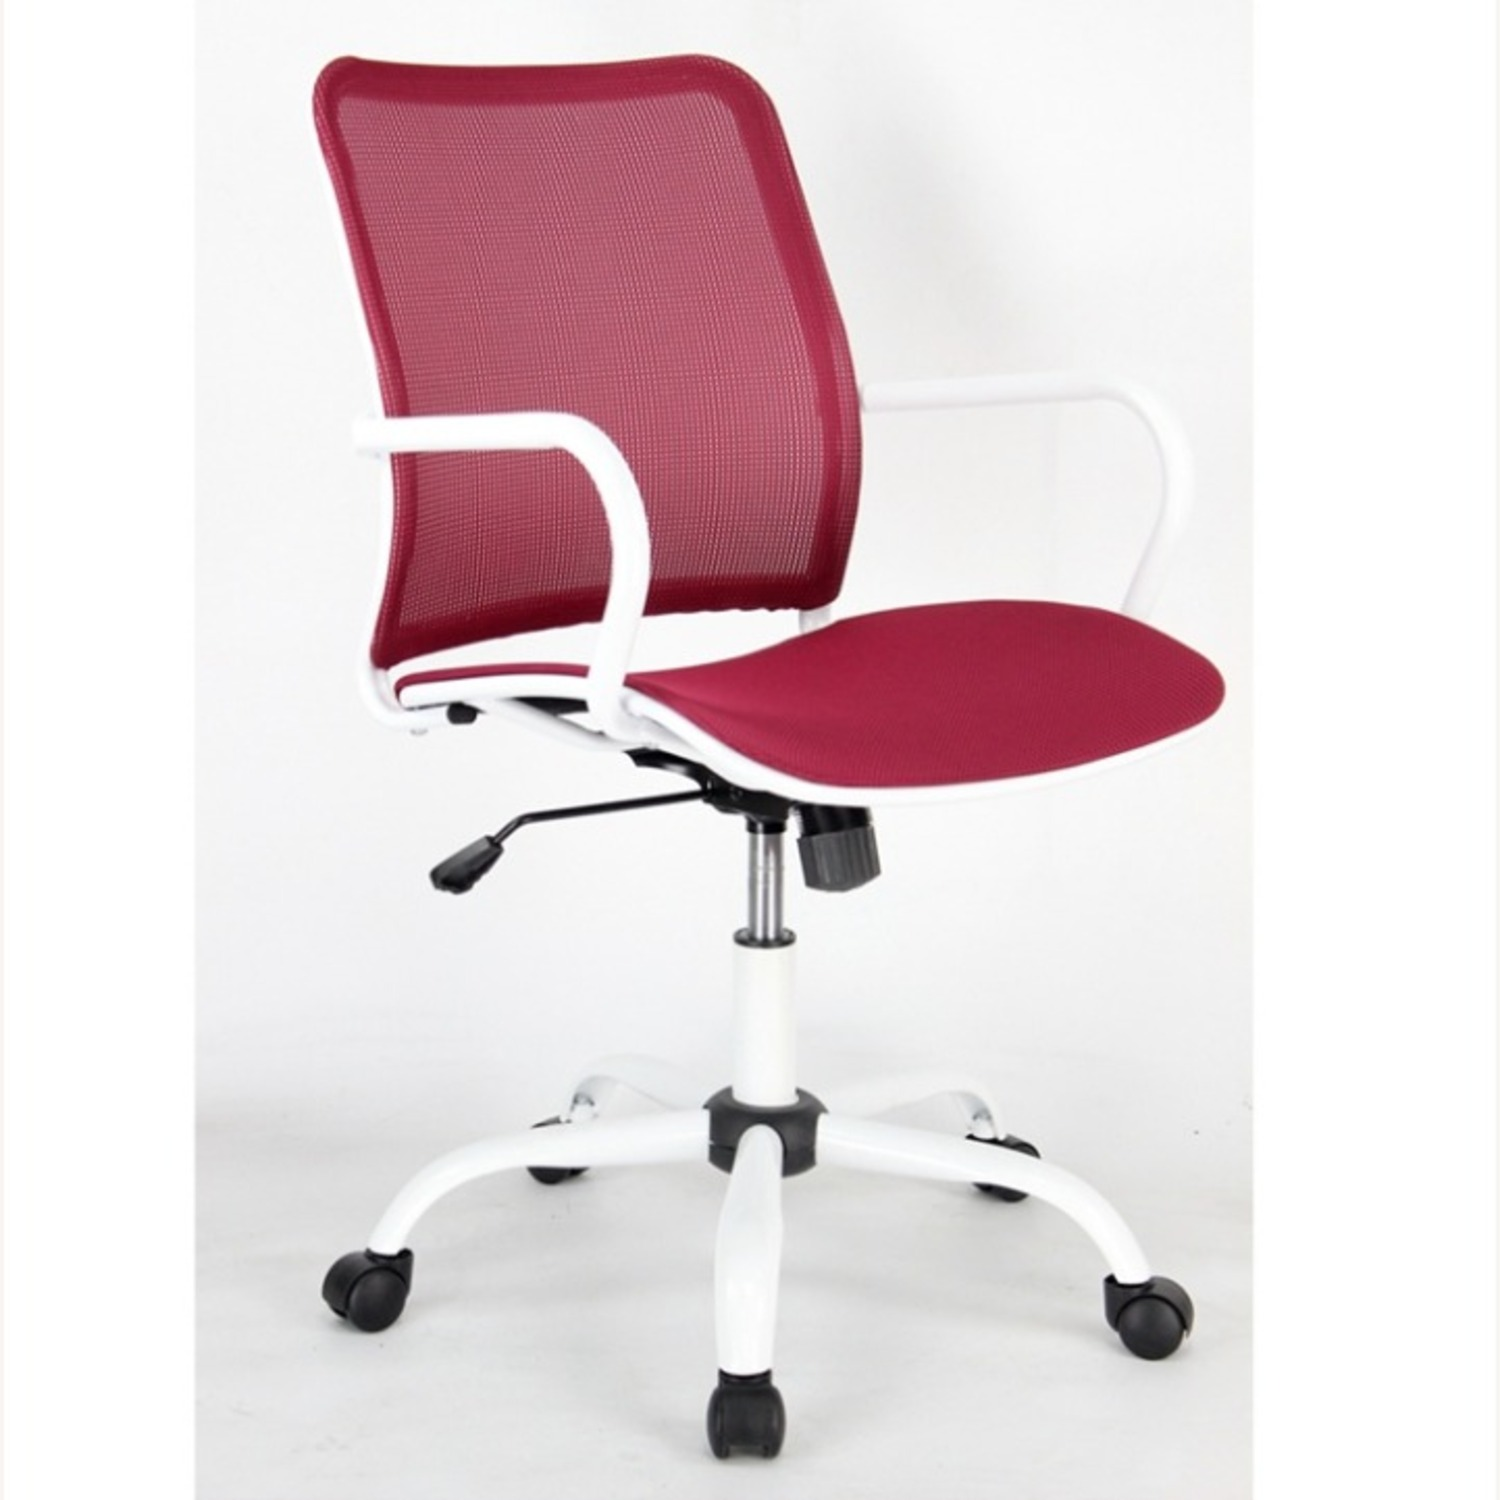 Office Chair In Red Back & Seat Mesh Finish - image-2